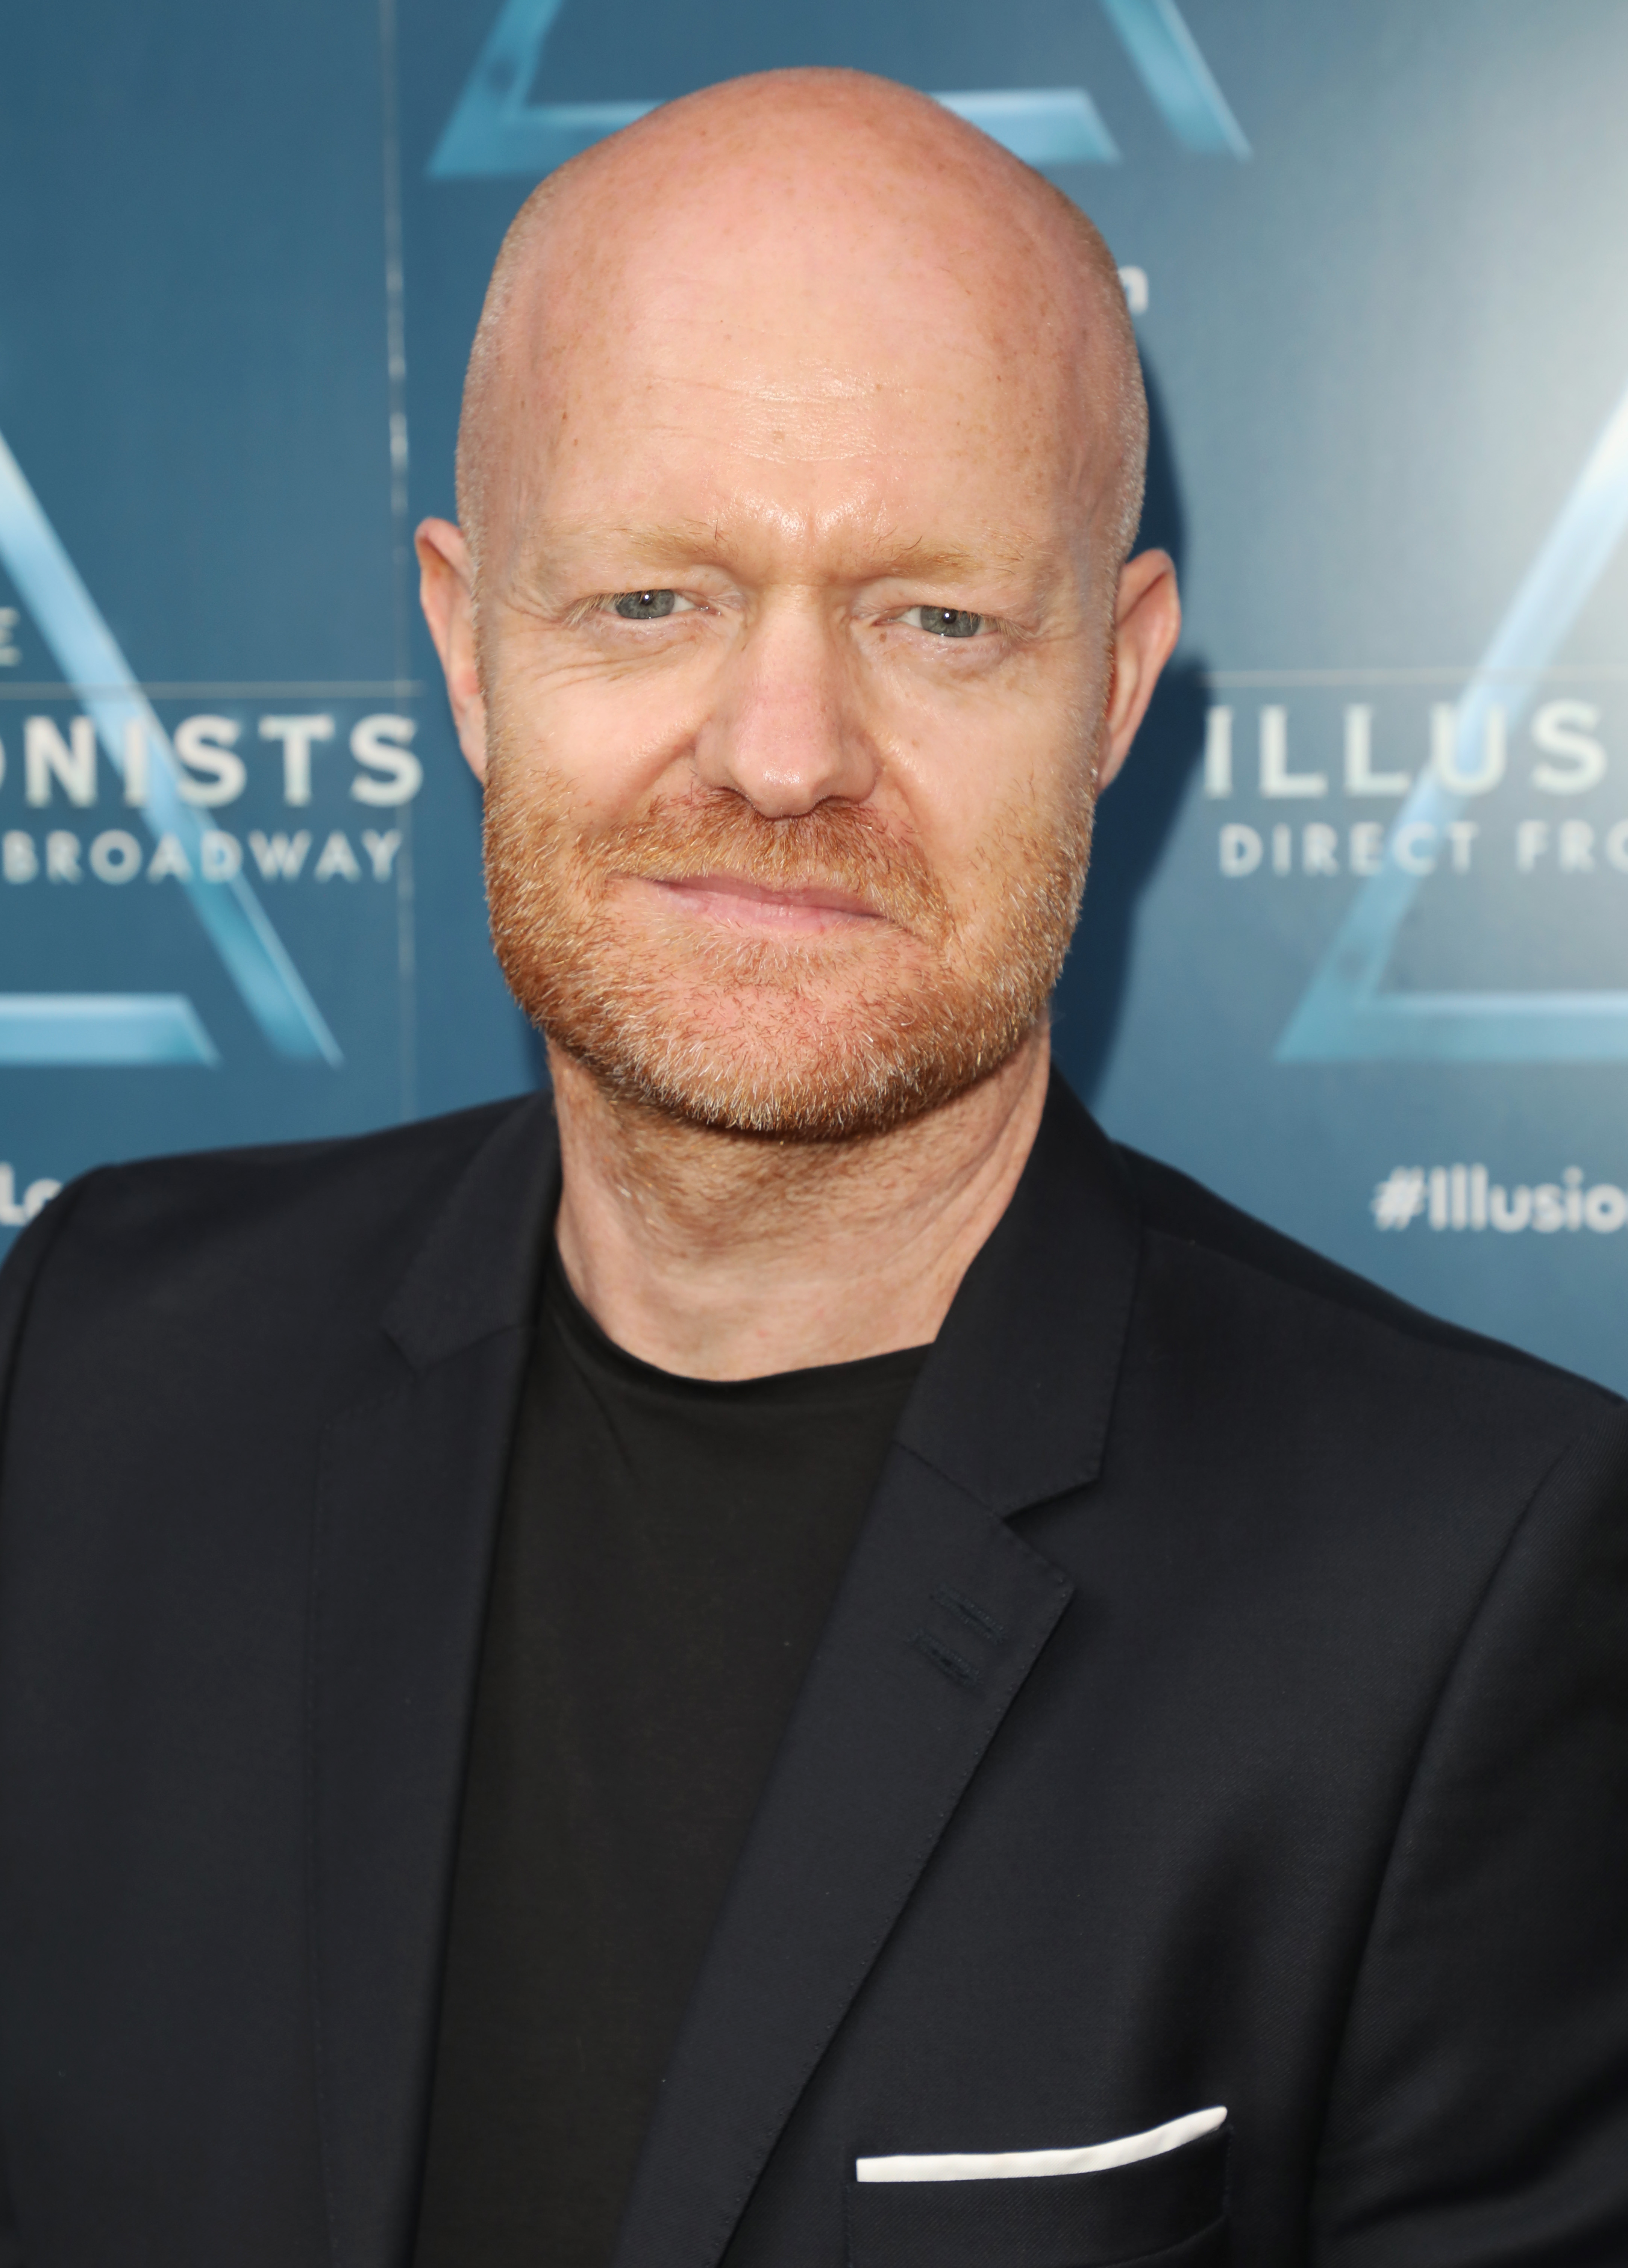 Celebrities attending the Gala Night for The Illusionists at the Shaftesbury Theatre in London Pictured: Jake Wood Ref: SPL5103215 100719 NON-EXCLUSIVE Picture by: Brett D. Cove / SplashNews.com Splash News and Pictures Los Angeles: 310-821-2666 New York: 212-619-2666 London: 0207 644 7656 Milan: 02 4399 8577 photodesk@splashnews.com World Rights